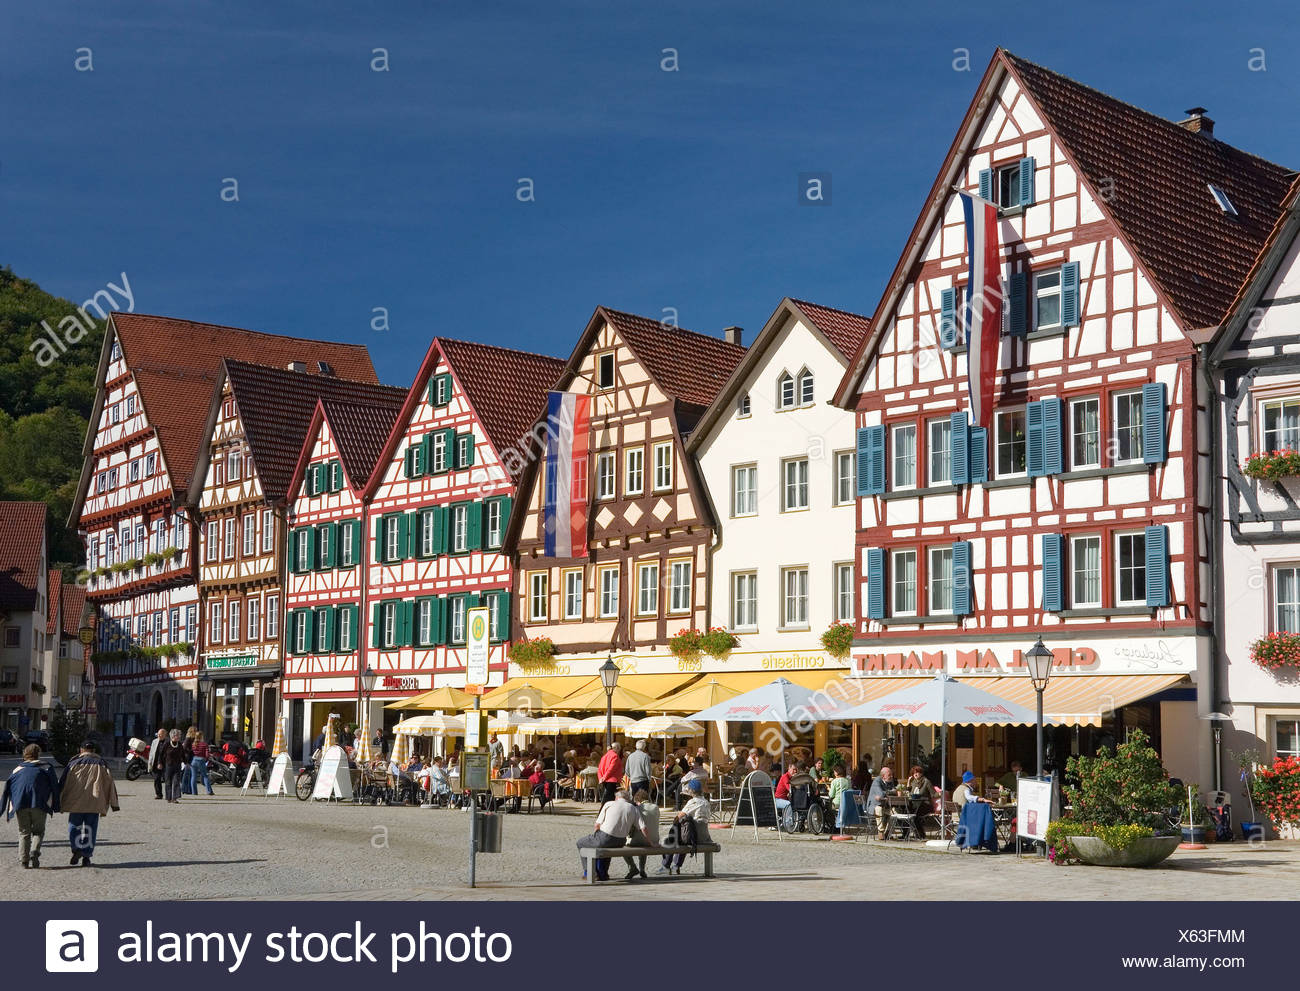 Deko Bad Urach Urach Stockfotos Urach Bilder Alamy